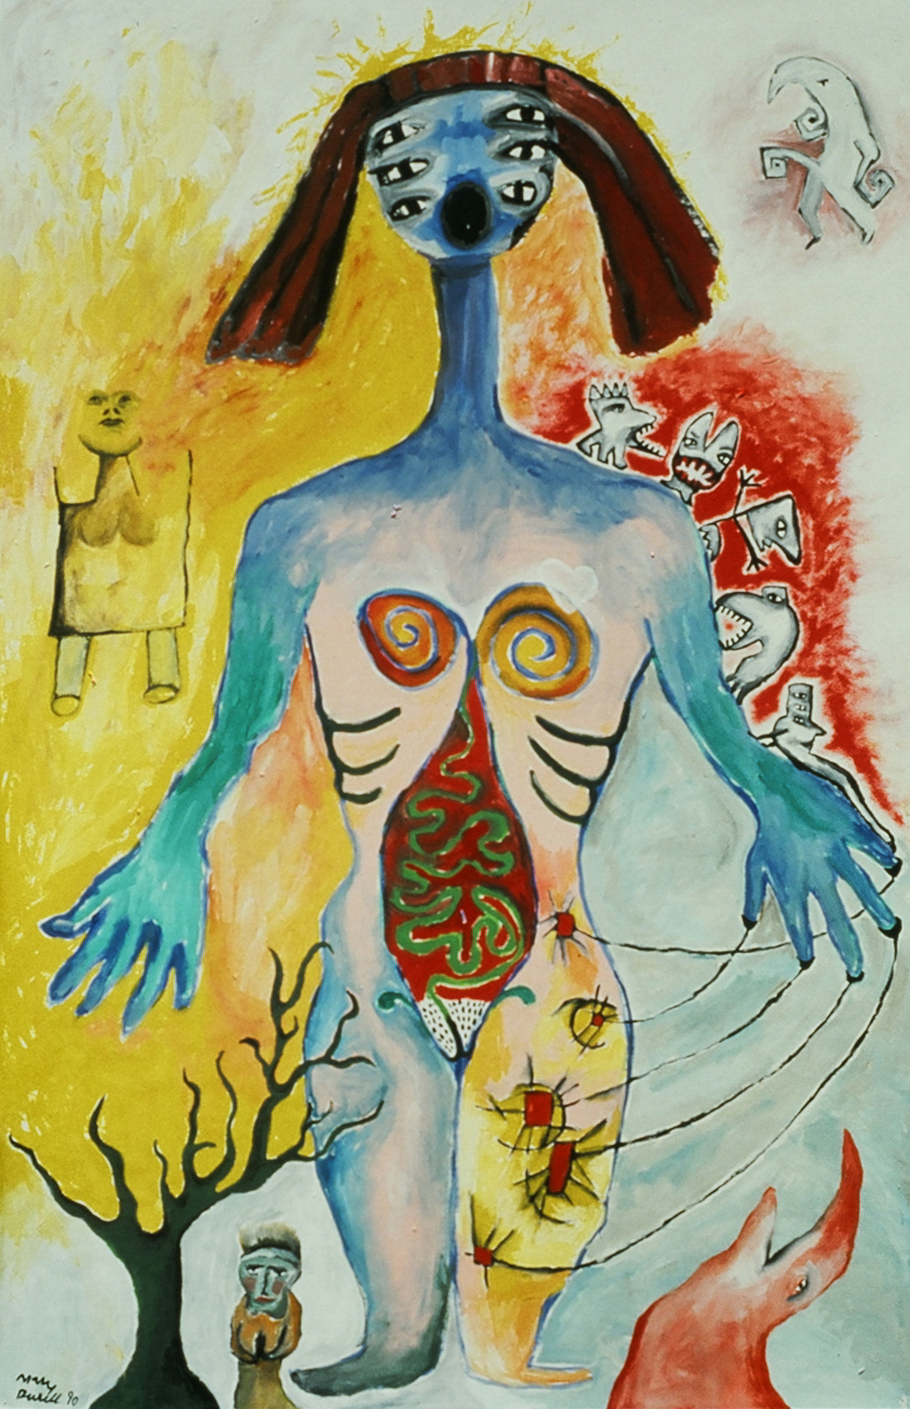 Separation , 1990, acrylic on canvas, 48 x 72 in.